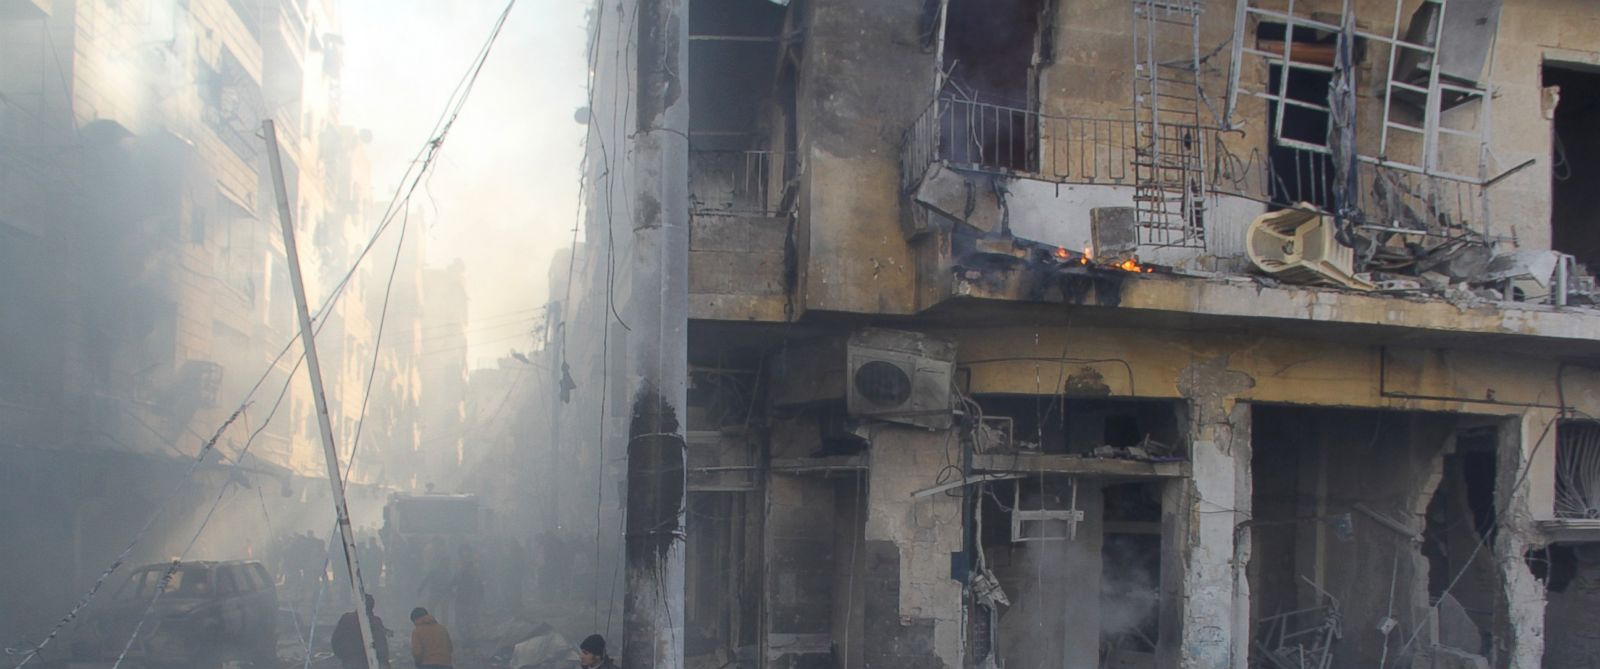 PHOTO:In this file photo, firefighters extinguish a fire after Daesh terrorists car-bomb attack against Ahrar ash-Sham Headquarters in Aleppo, Syria, Jan. 25, 2016.